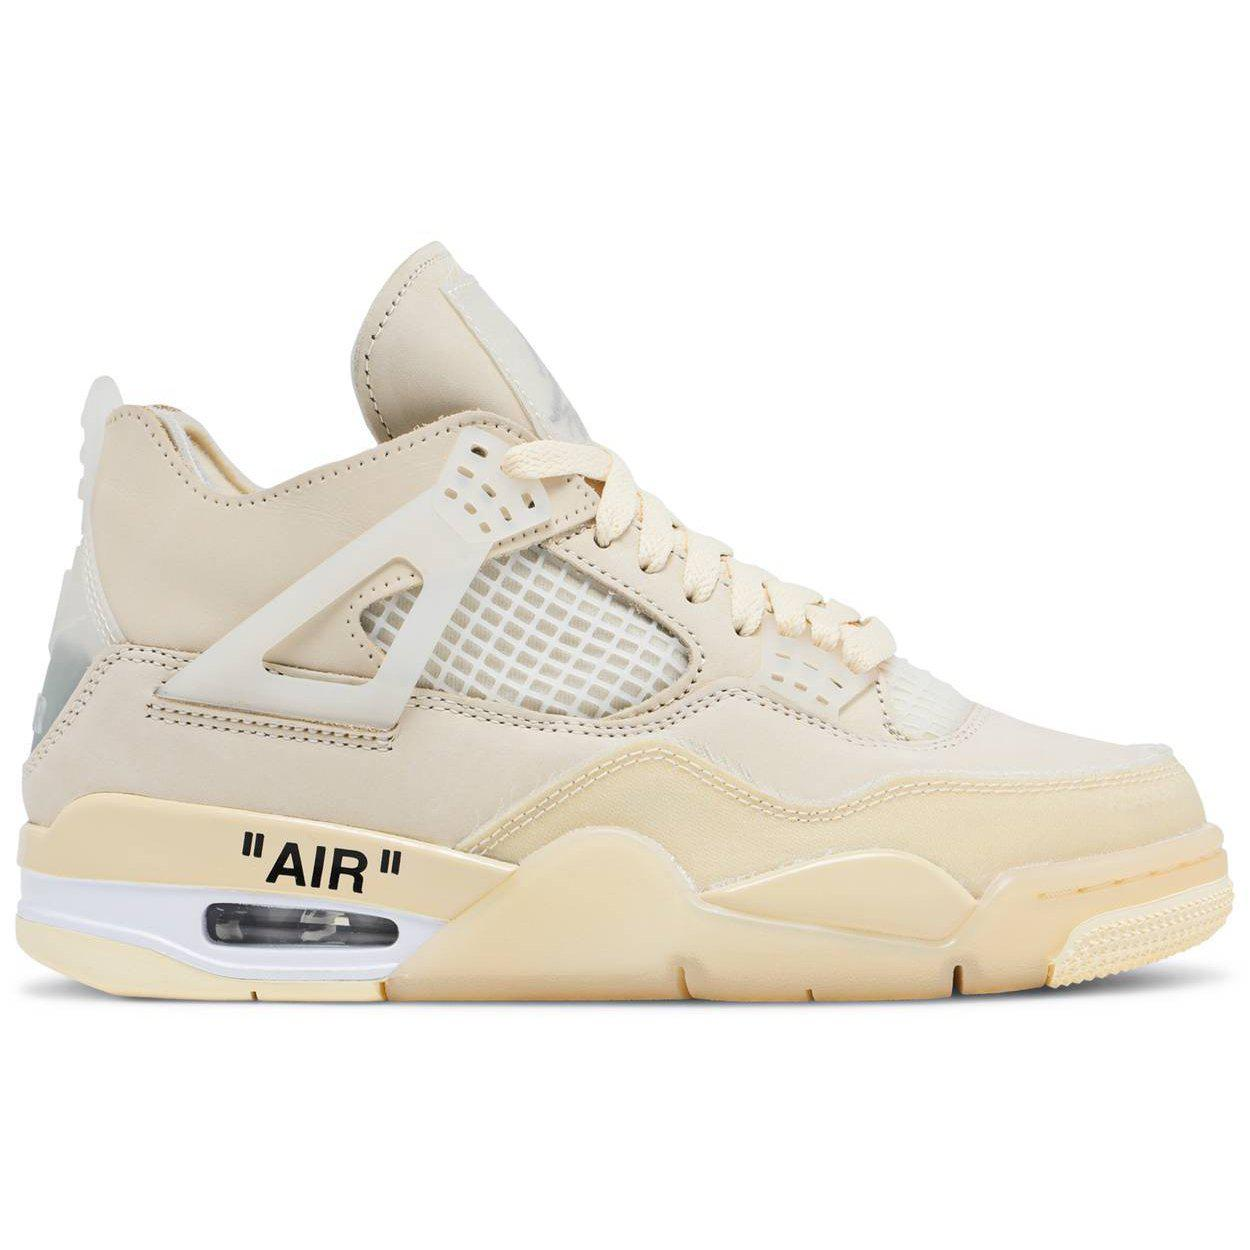 Nike Off-White x Wmns Air Jordan 4 SP 'Sail' | Waves Never Die | Nike | Sneakers